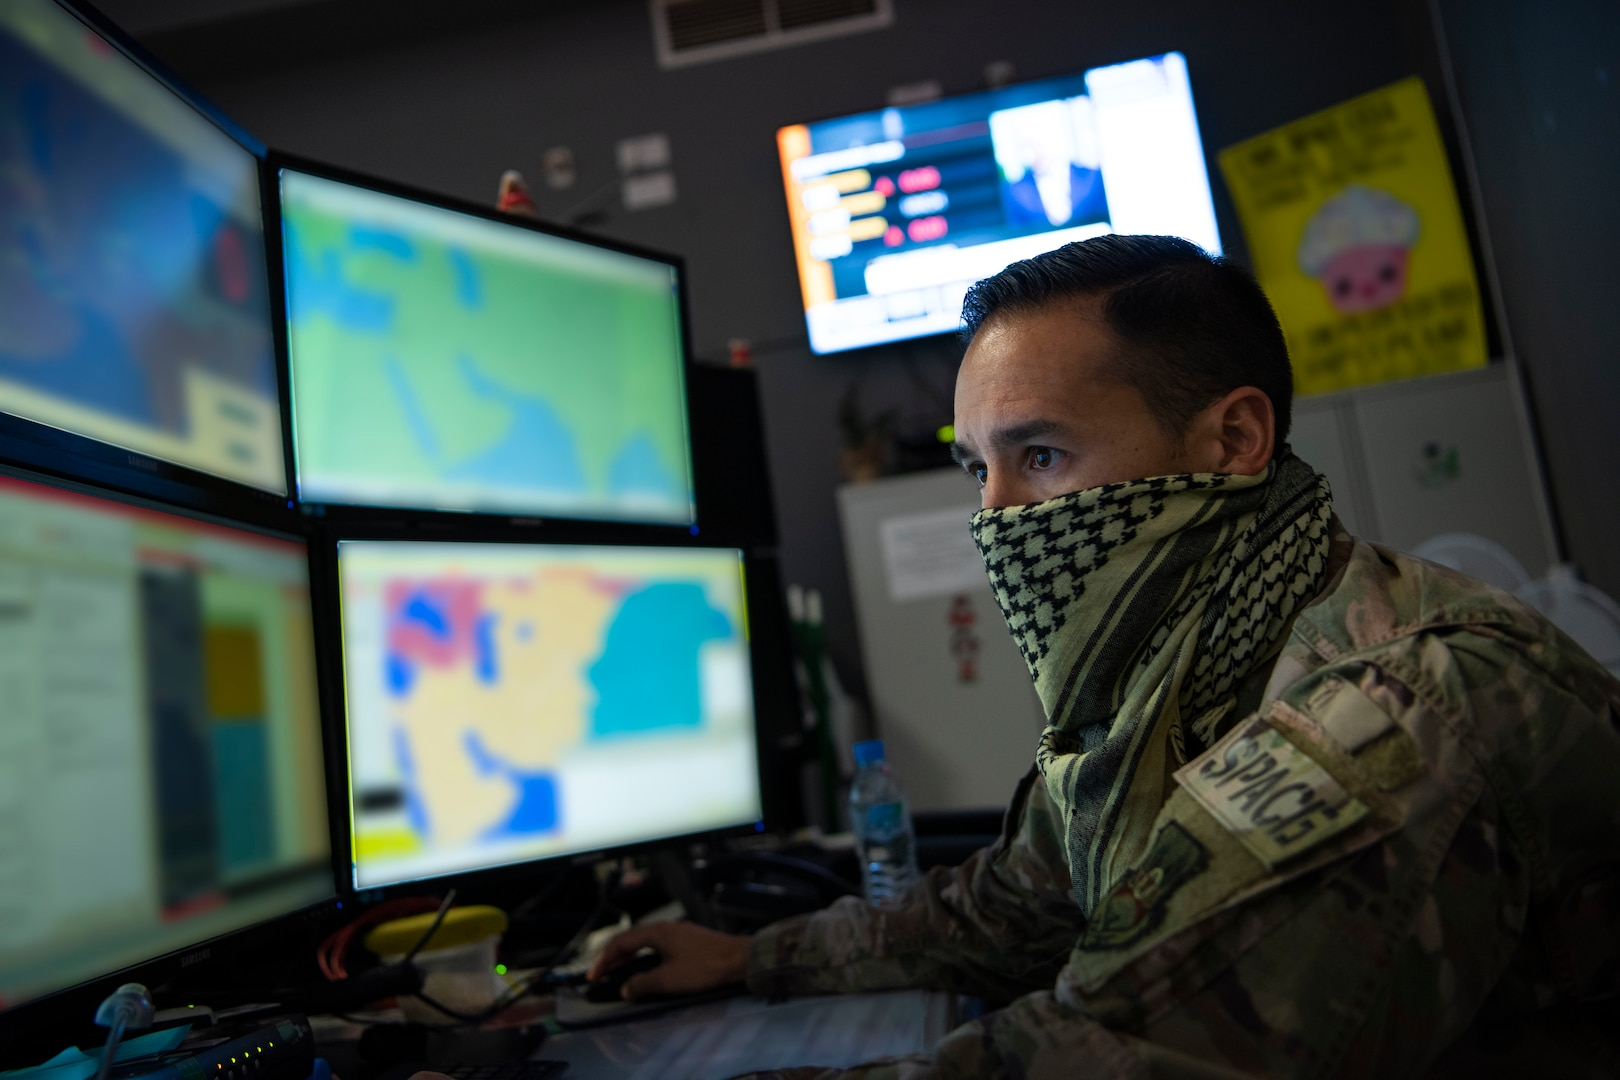 A U.S. Air Force Airman assigned to the 609th Air Operations Center performs tasks within the Combined Air Operations Center at Al Udeid Air Base, Qatar, April 20, 2020.